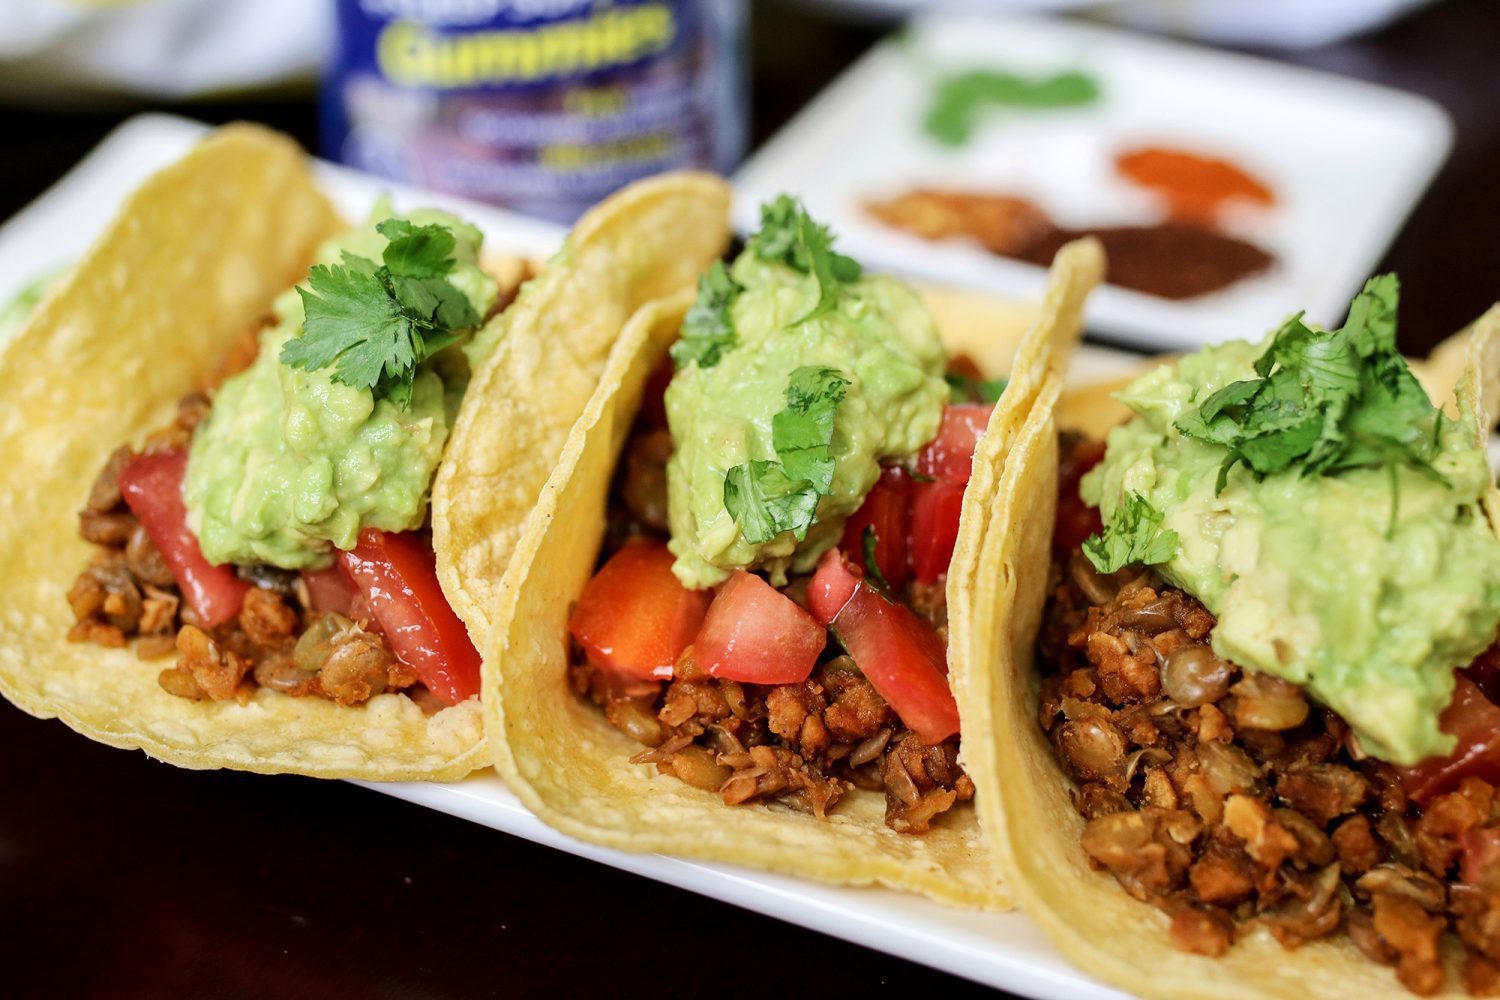 Vegetarian Lentil Tacos with Avocado and Salsa Fresca